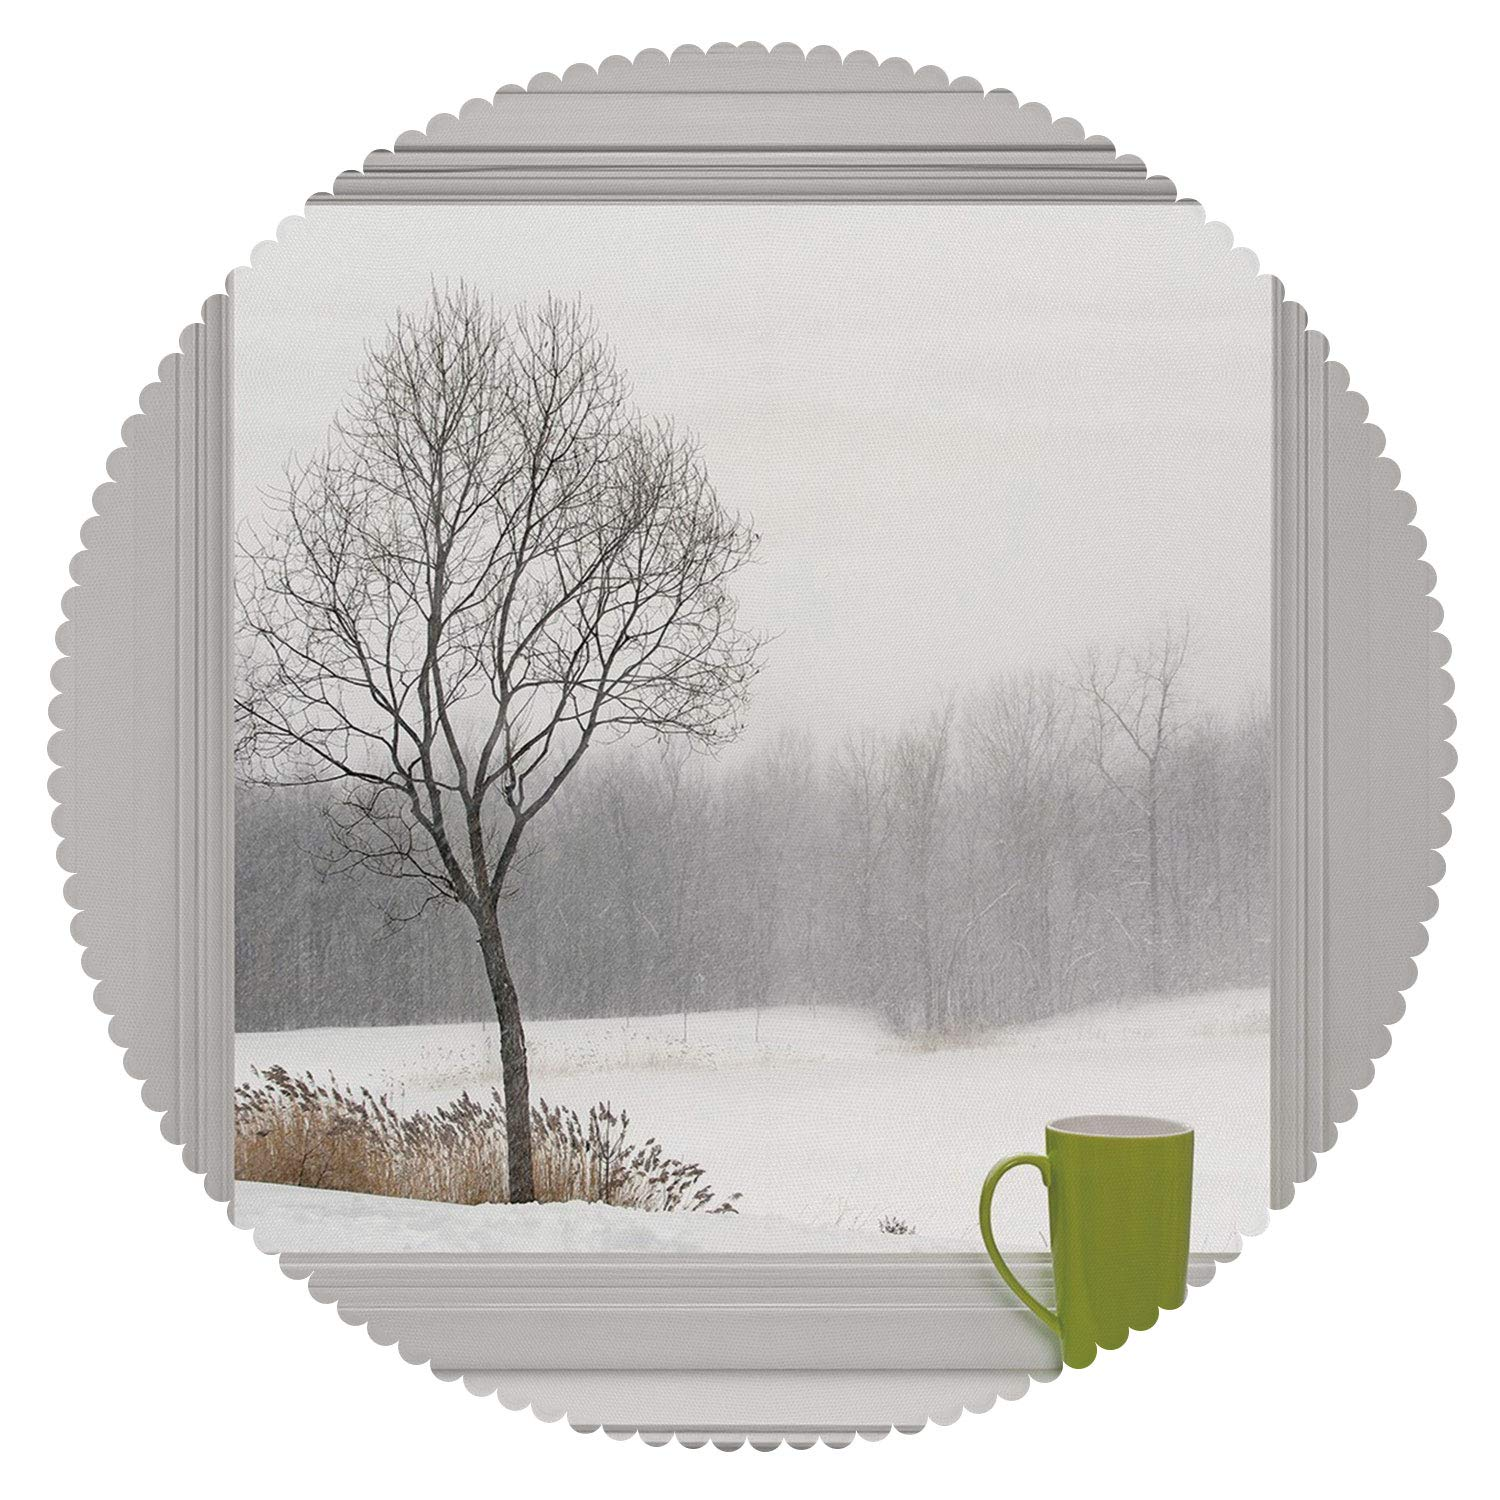 iPrint Mildewproof Round Tablecloth [ Winter,Green Teacup on a Windowsill Forest Outdoors February Snowstorm Scenic Countryside Decorative ] Home Accessories